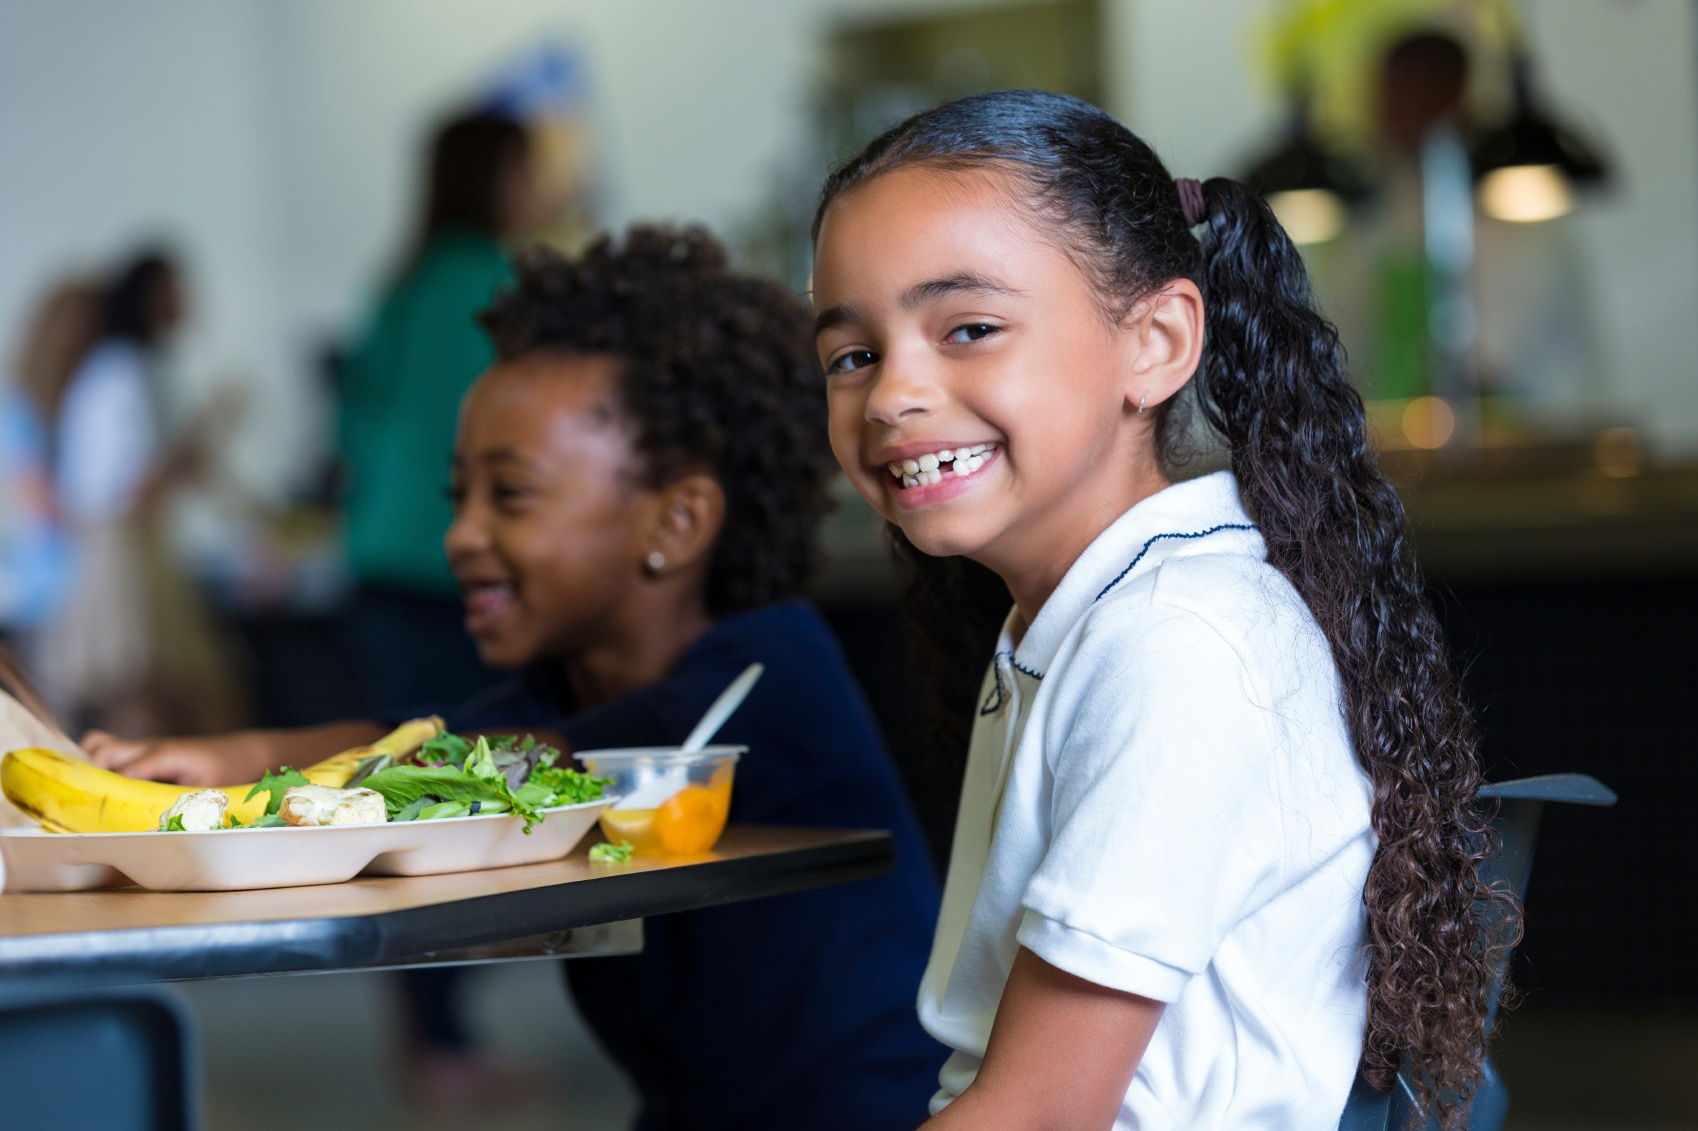 Cute-elementary-school-girl-eating-healthy-lunch-in-cafeteria-000043847850_Medium.jpg